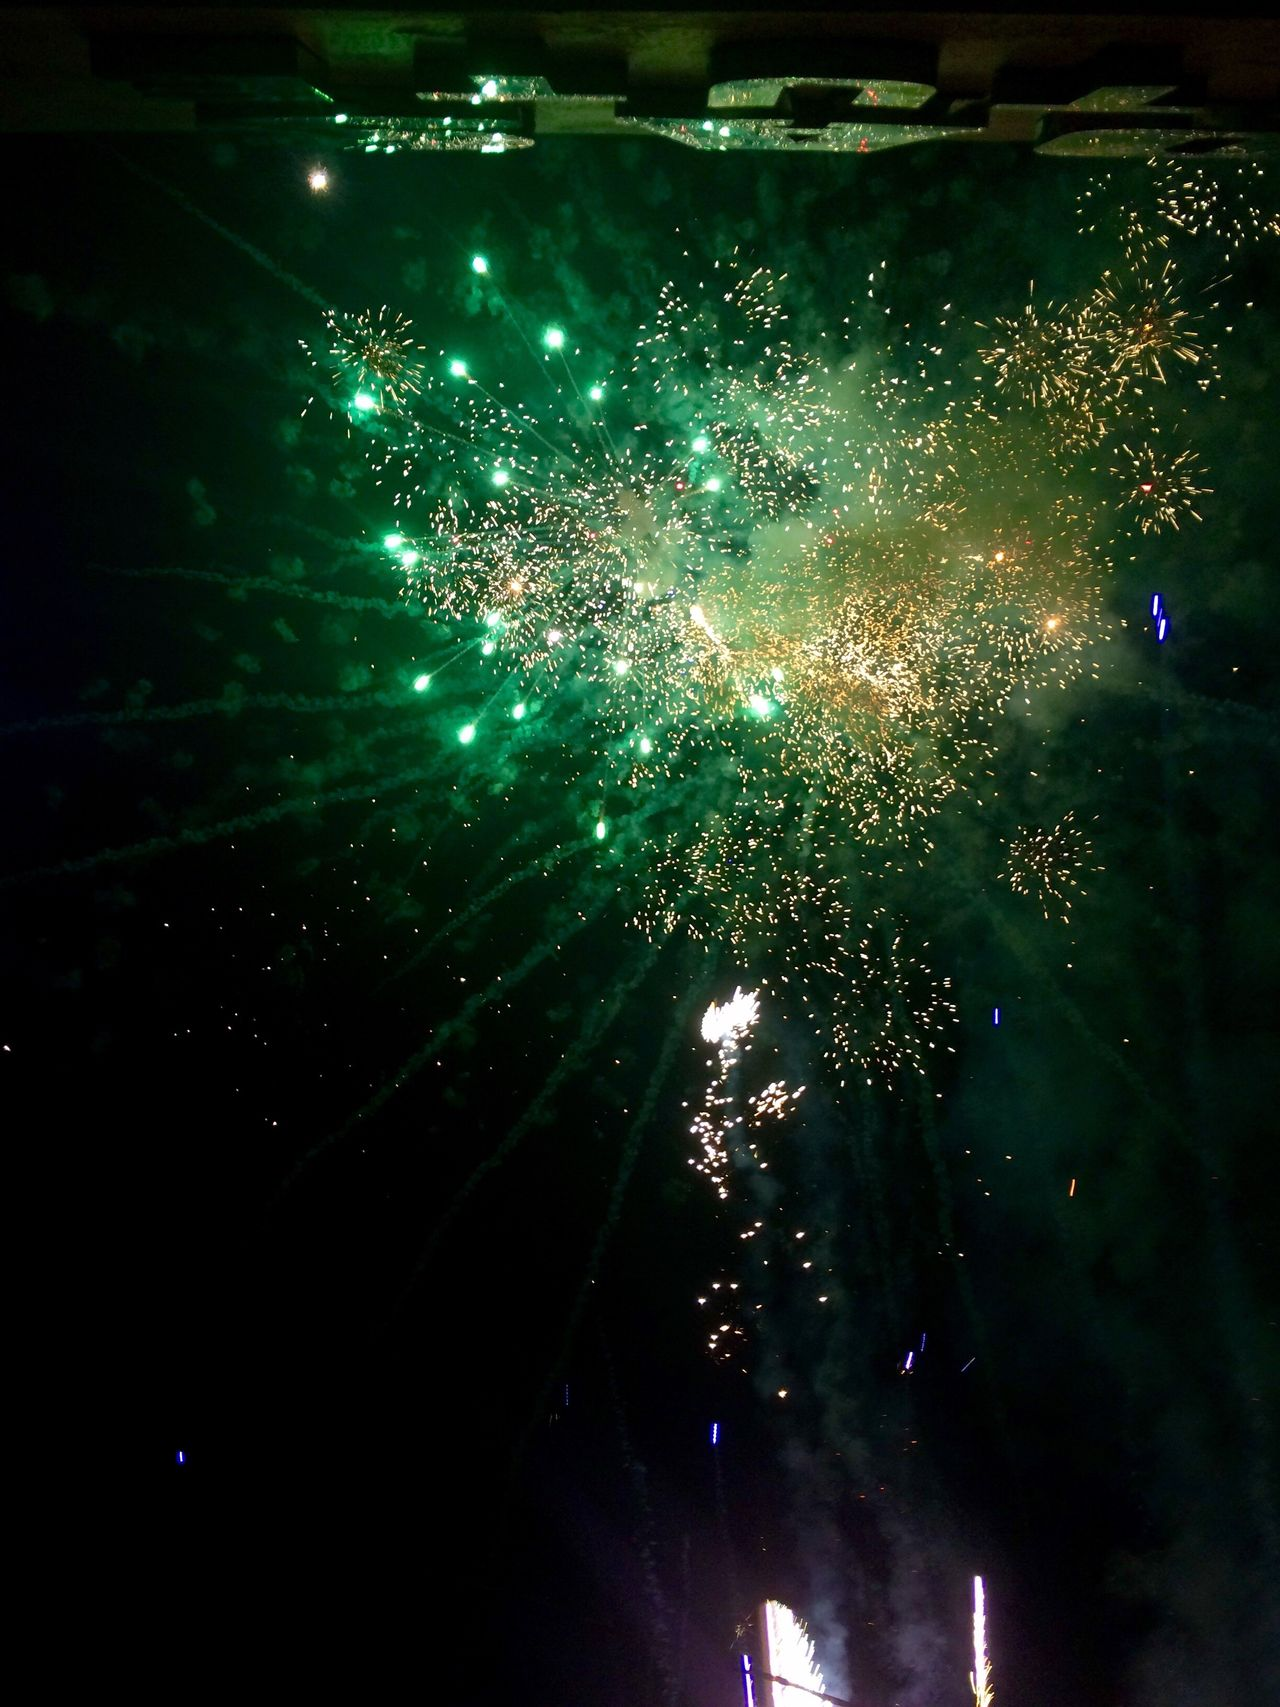 1/1/17 My Year My View No People No Filter, No Edit, Just Photography No Edit No Filter Photography Original Photo Shot From Below Front Camera Fireworks 🎆 Green Color 💚 Sky Outdoors Exploding Celebration Arts Culture And Entertainment Night 🌌 Illuminated ShotOnIphone 📱 Philippines 🇵🇭 Adapted To The City